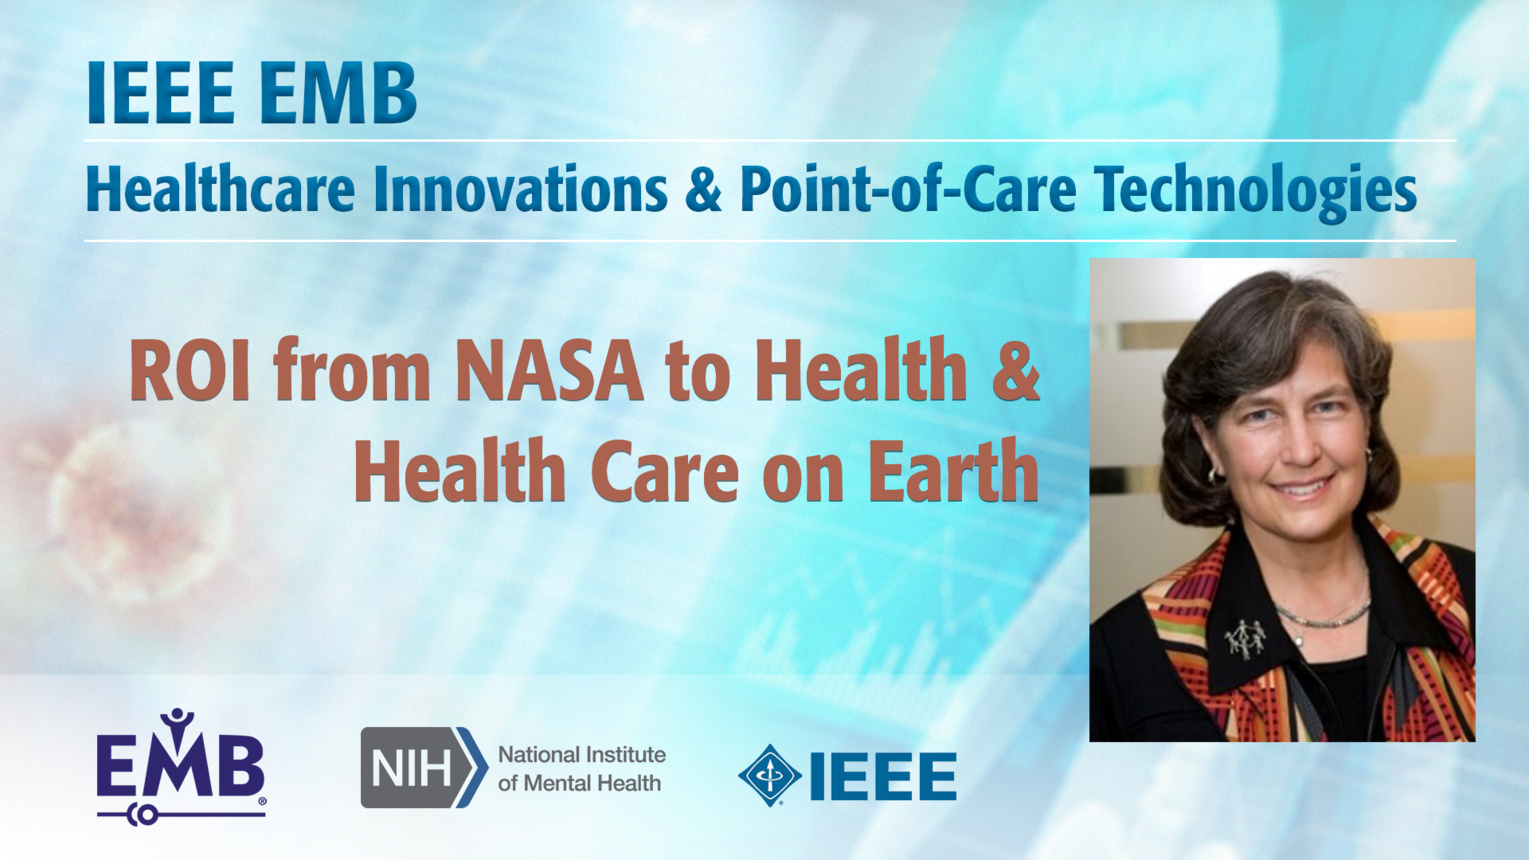 ROI from NASA to Health & Health Care on Earth - Aenor Sawyer - IEEE EMBS at NIH, 2019